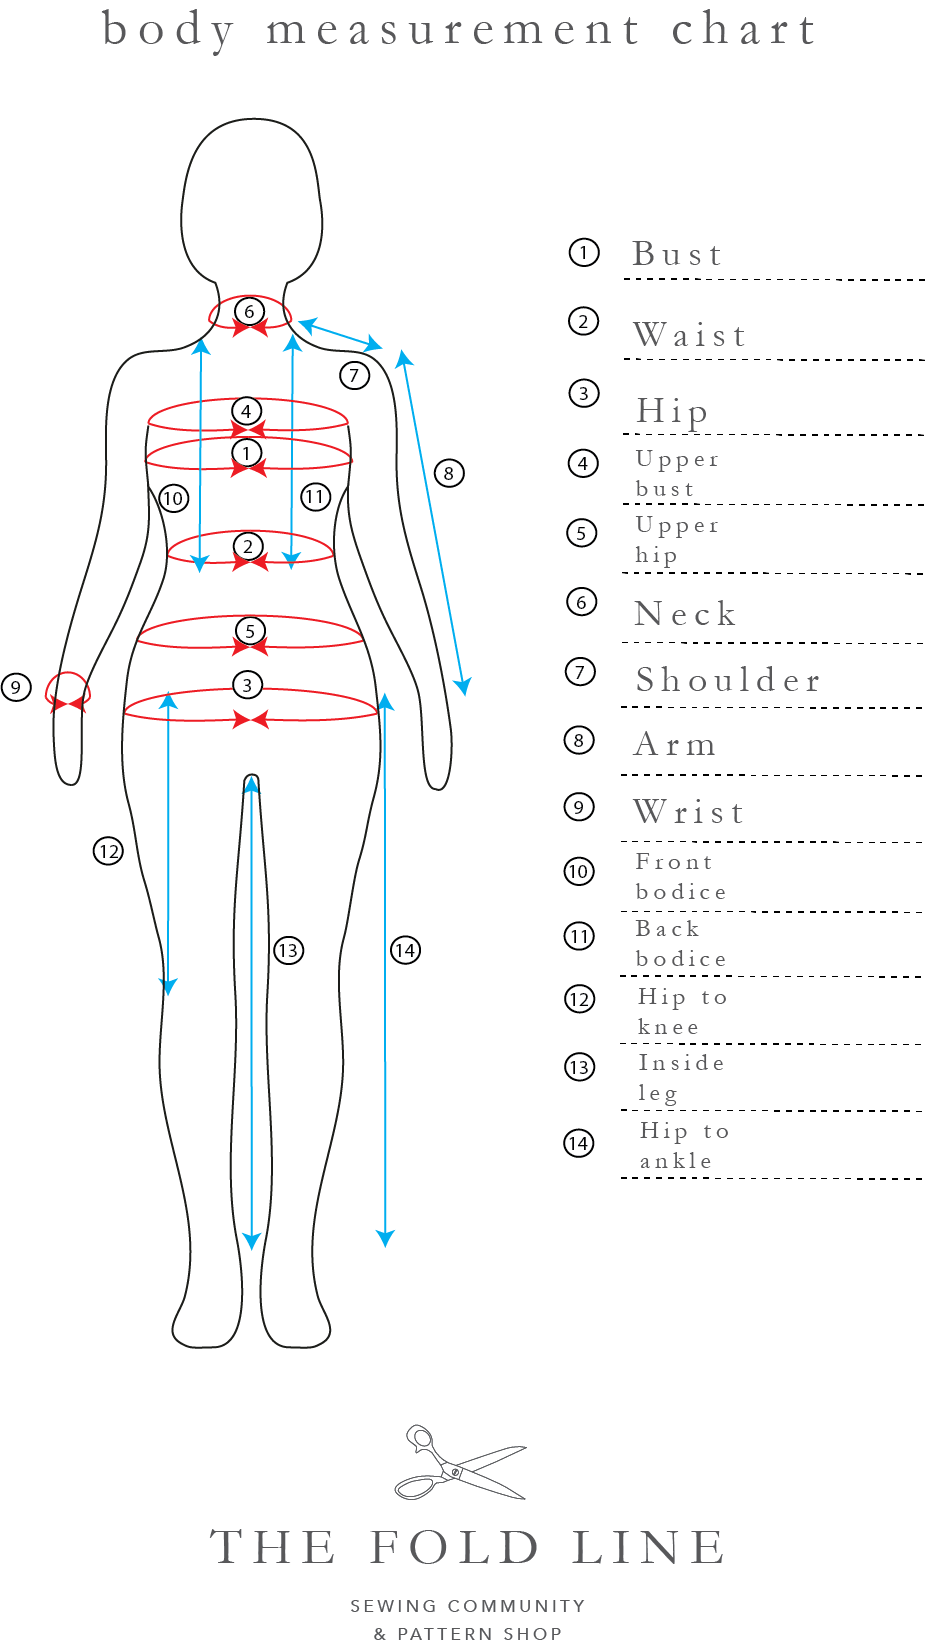 Fan image with printable body measurement chart for sewing